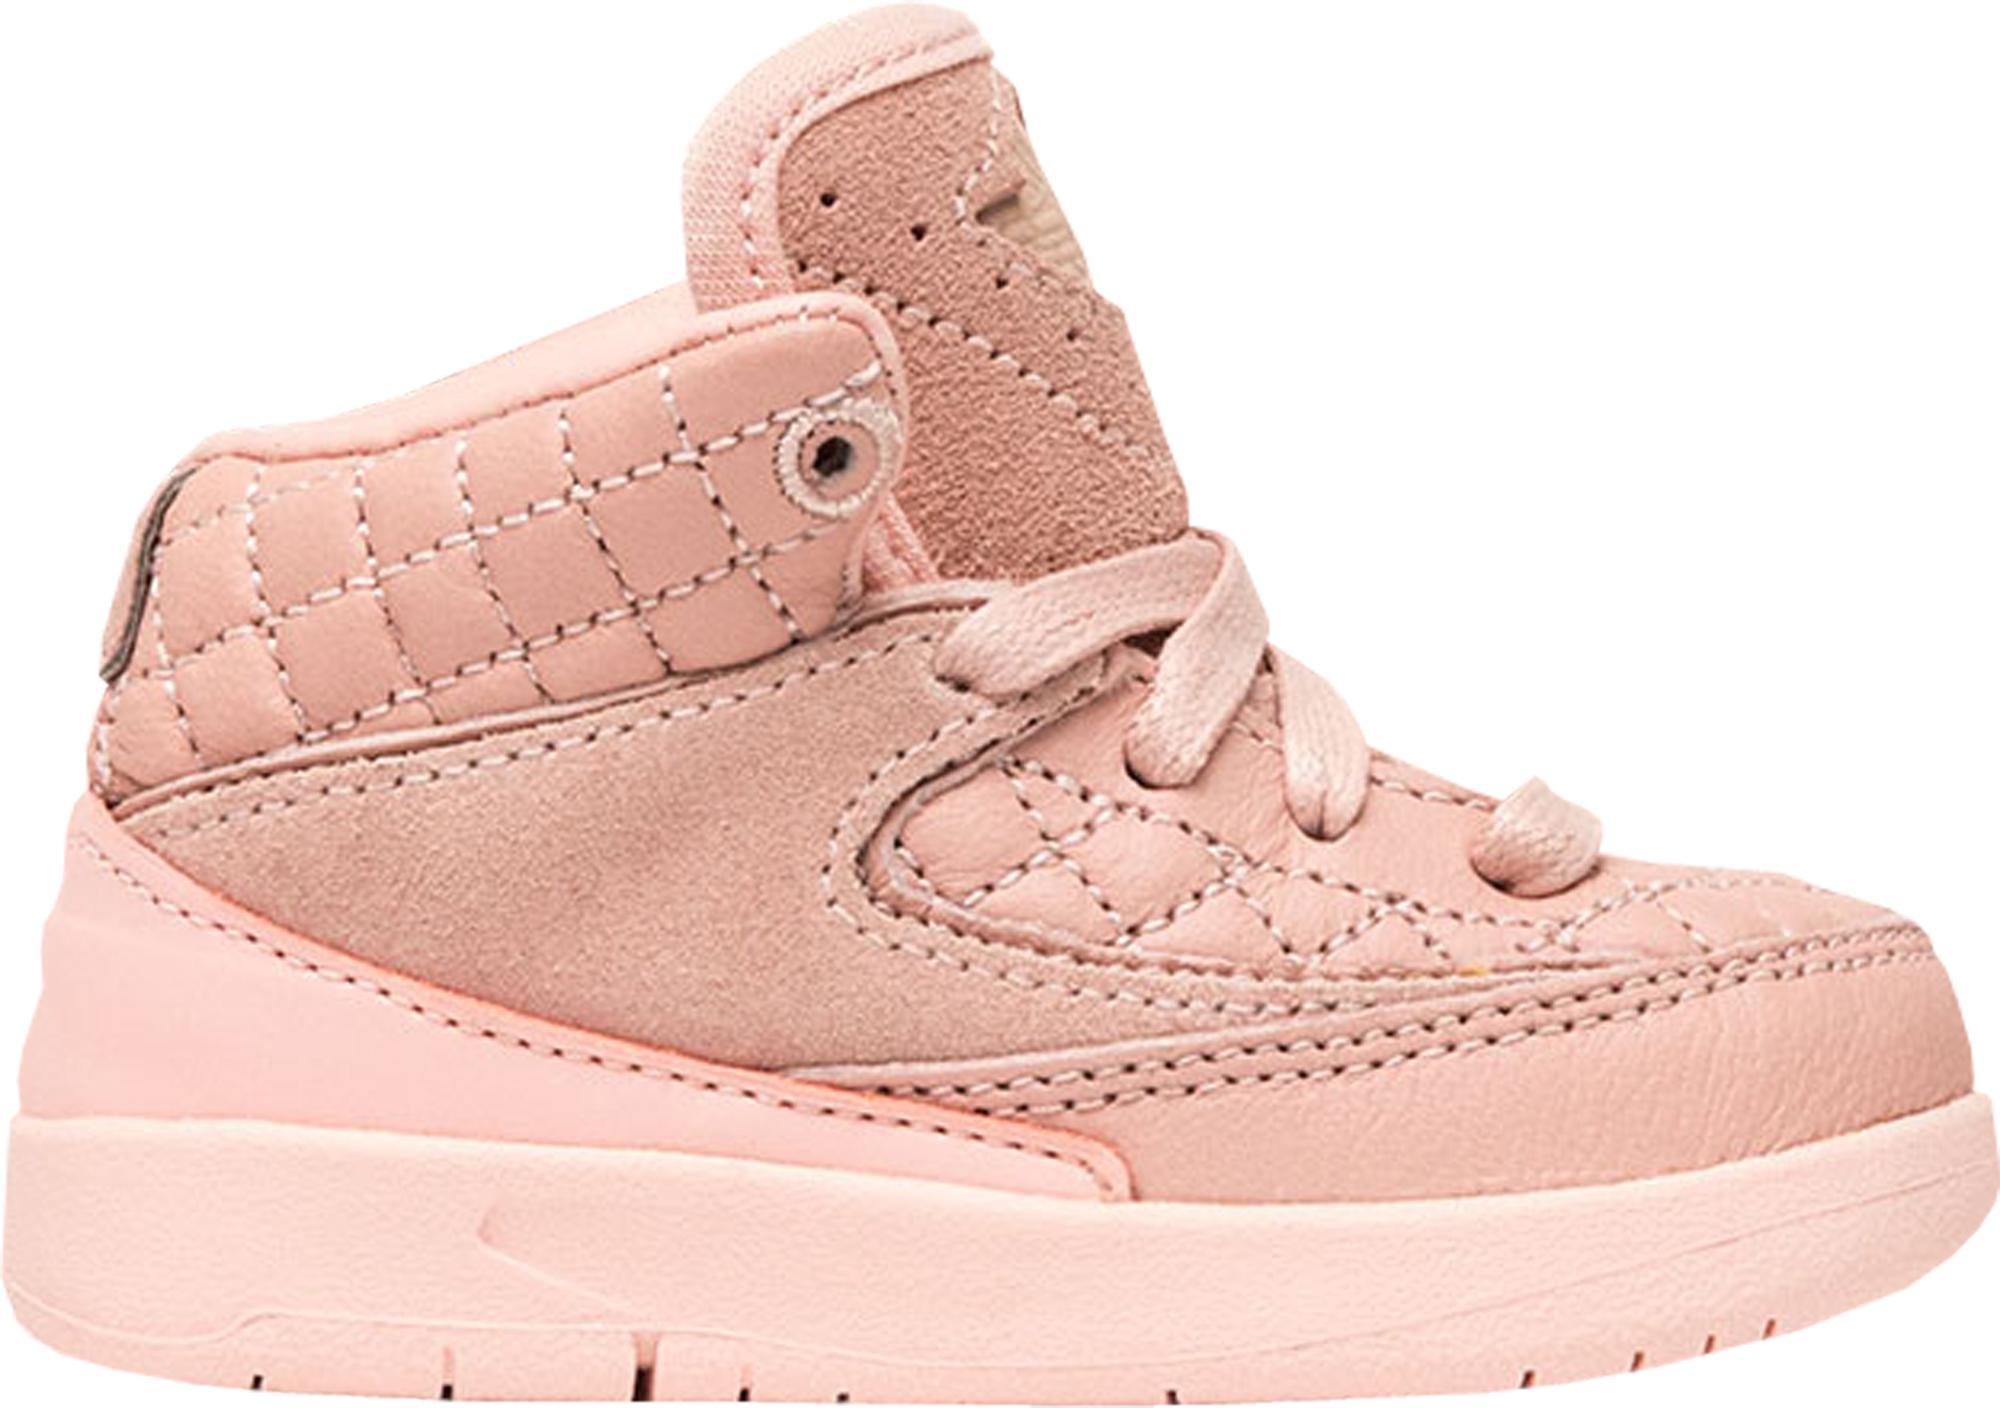 Lyst - Nike 2 Retro Just Don Arctic Orange (td) in Pink 35d916b88